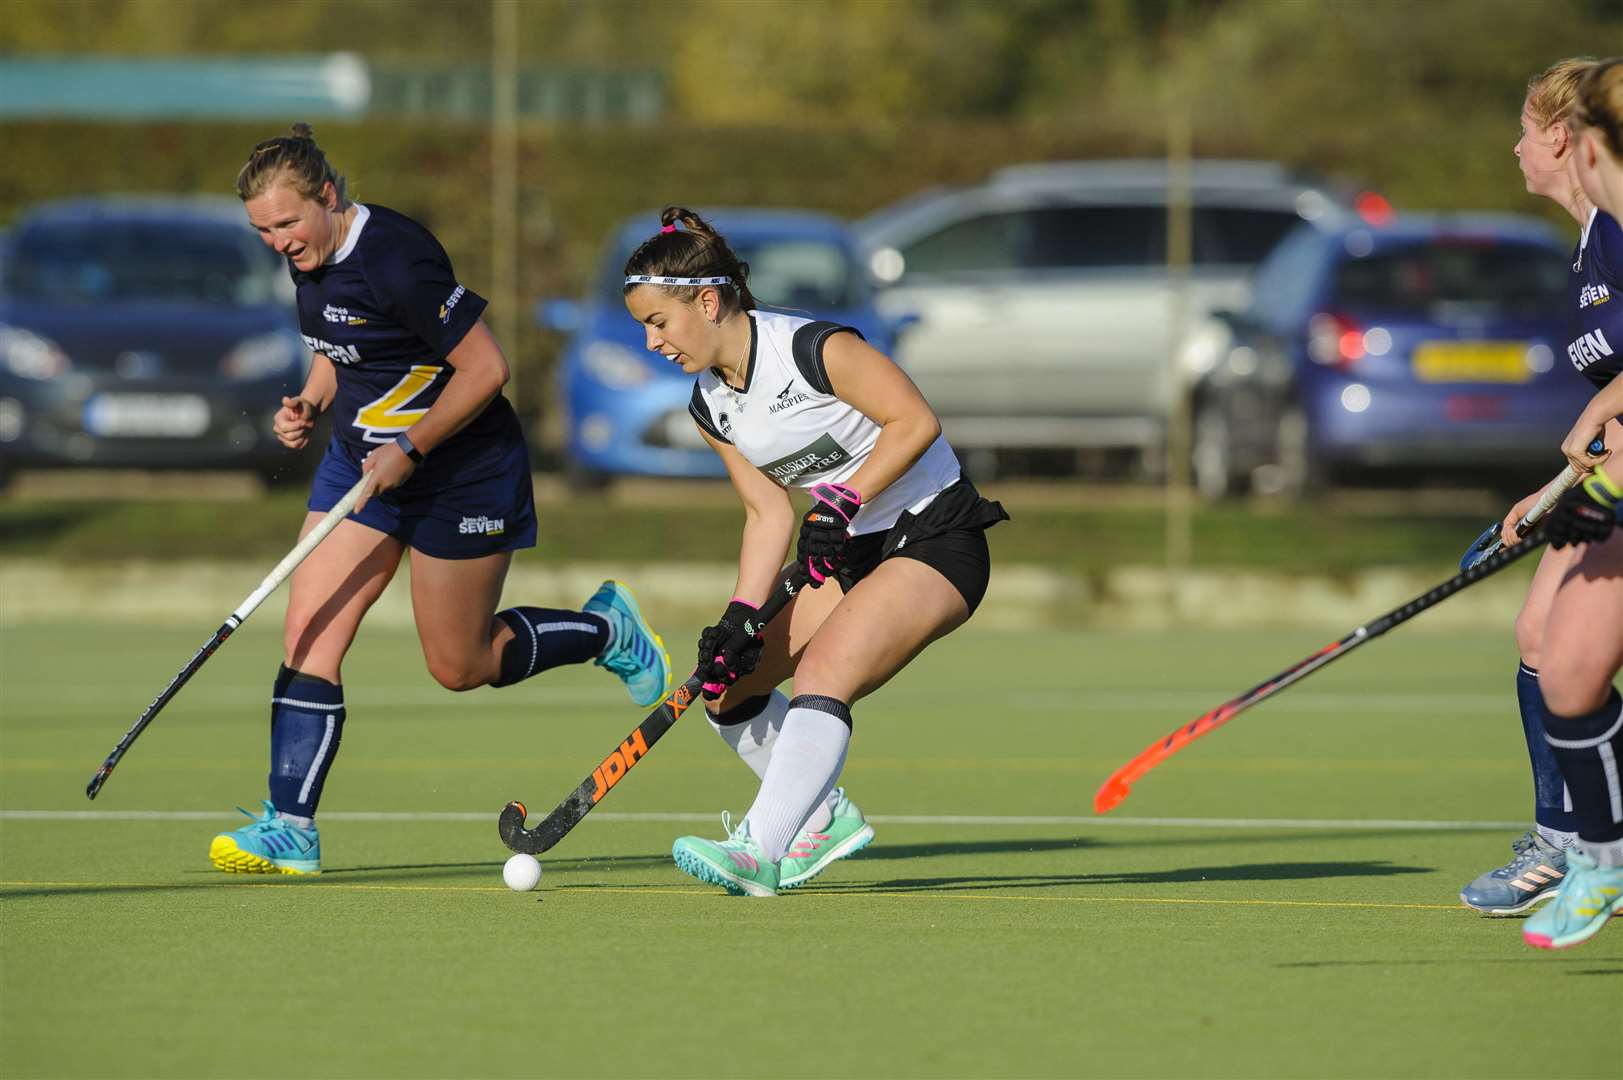 Weybread, Suffolk, UK, 03 November 2018..Hockey action from Harleston Magpies Ladies I v Ipswich, Lauren Rowe...Picture: Mark Bullimore Photography. (6384564)